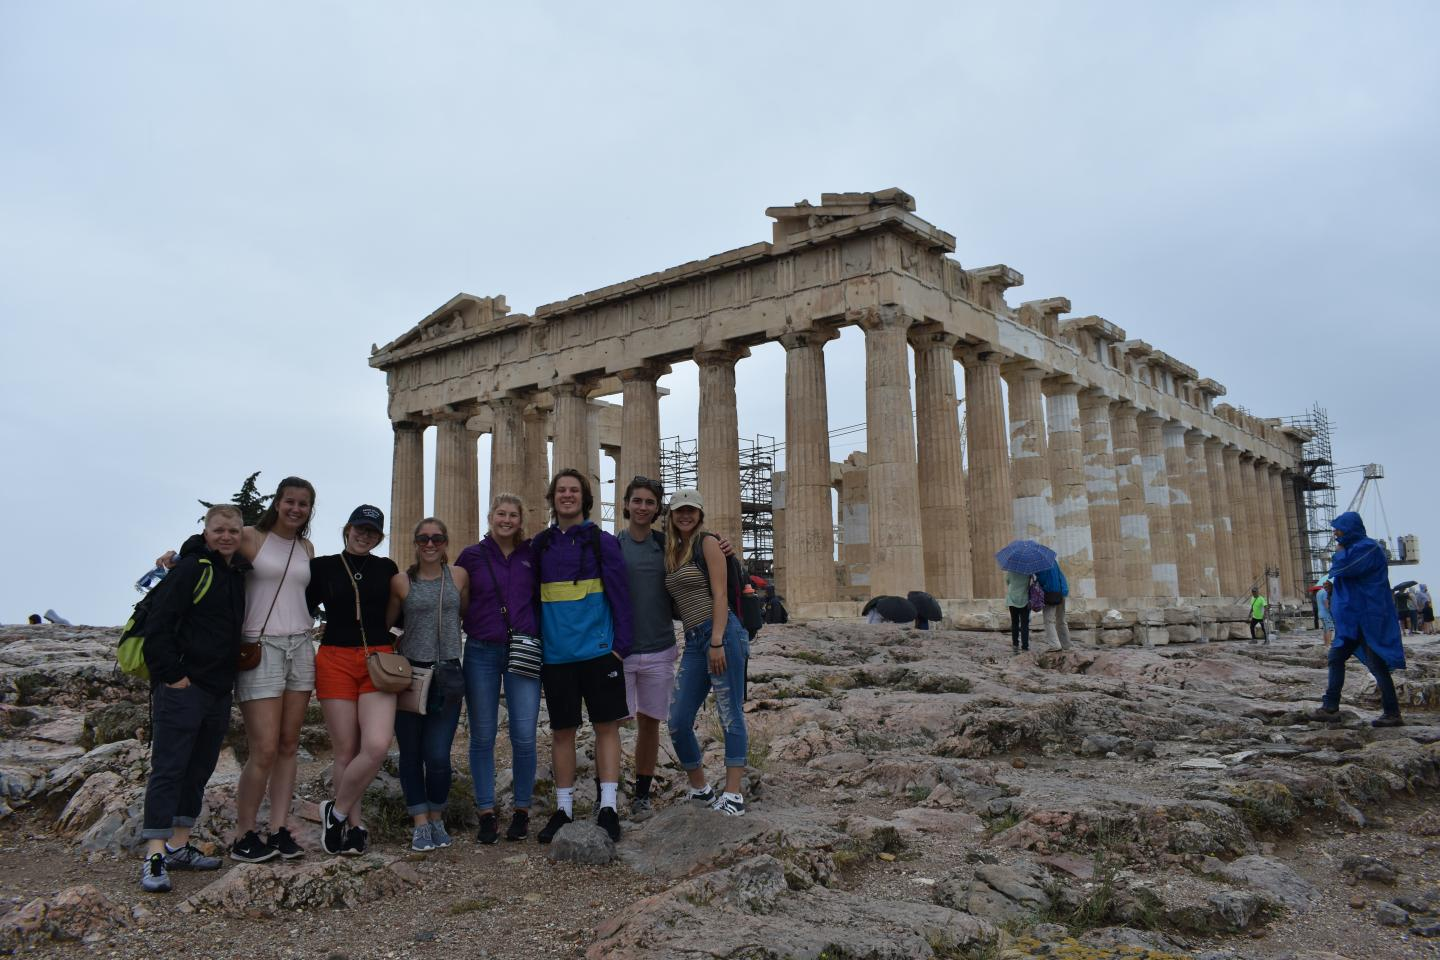 Students smile in front of the Acropolis